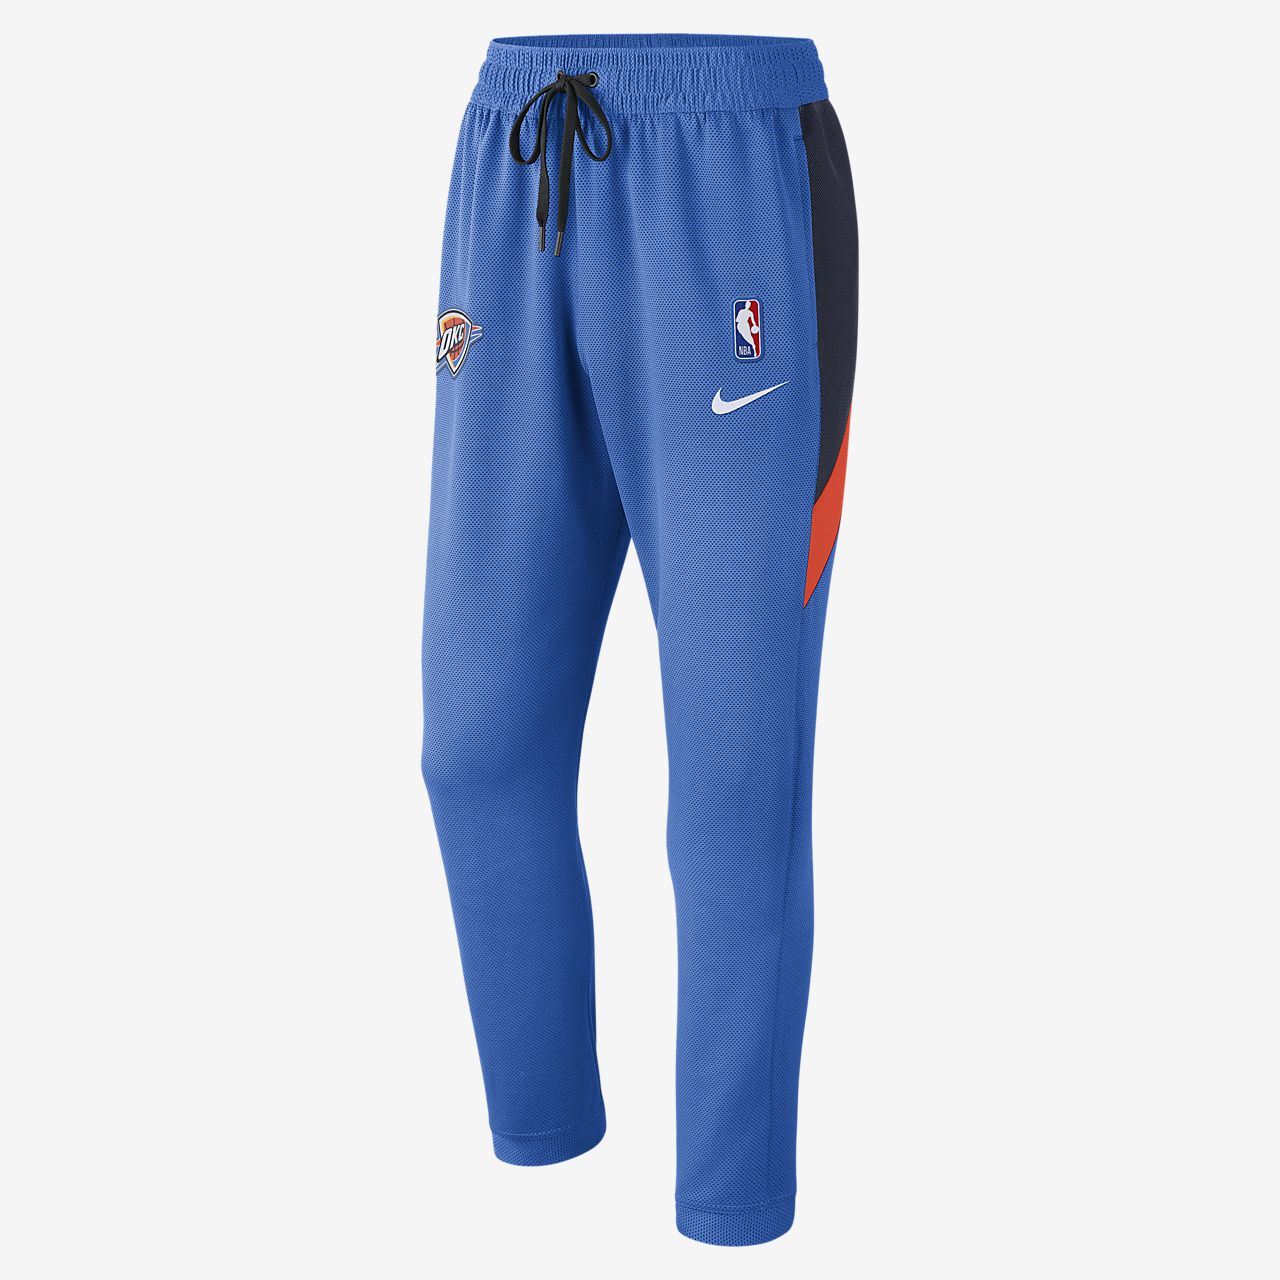 NBA-byxor Oklahoma City Thunder Nike Therma Flex Showtime för män